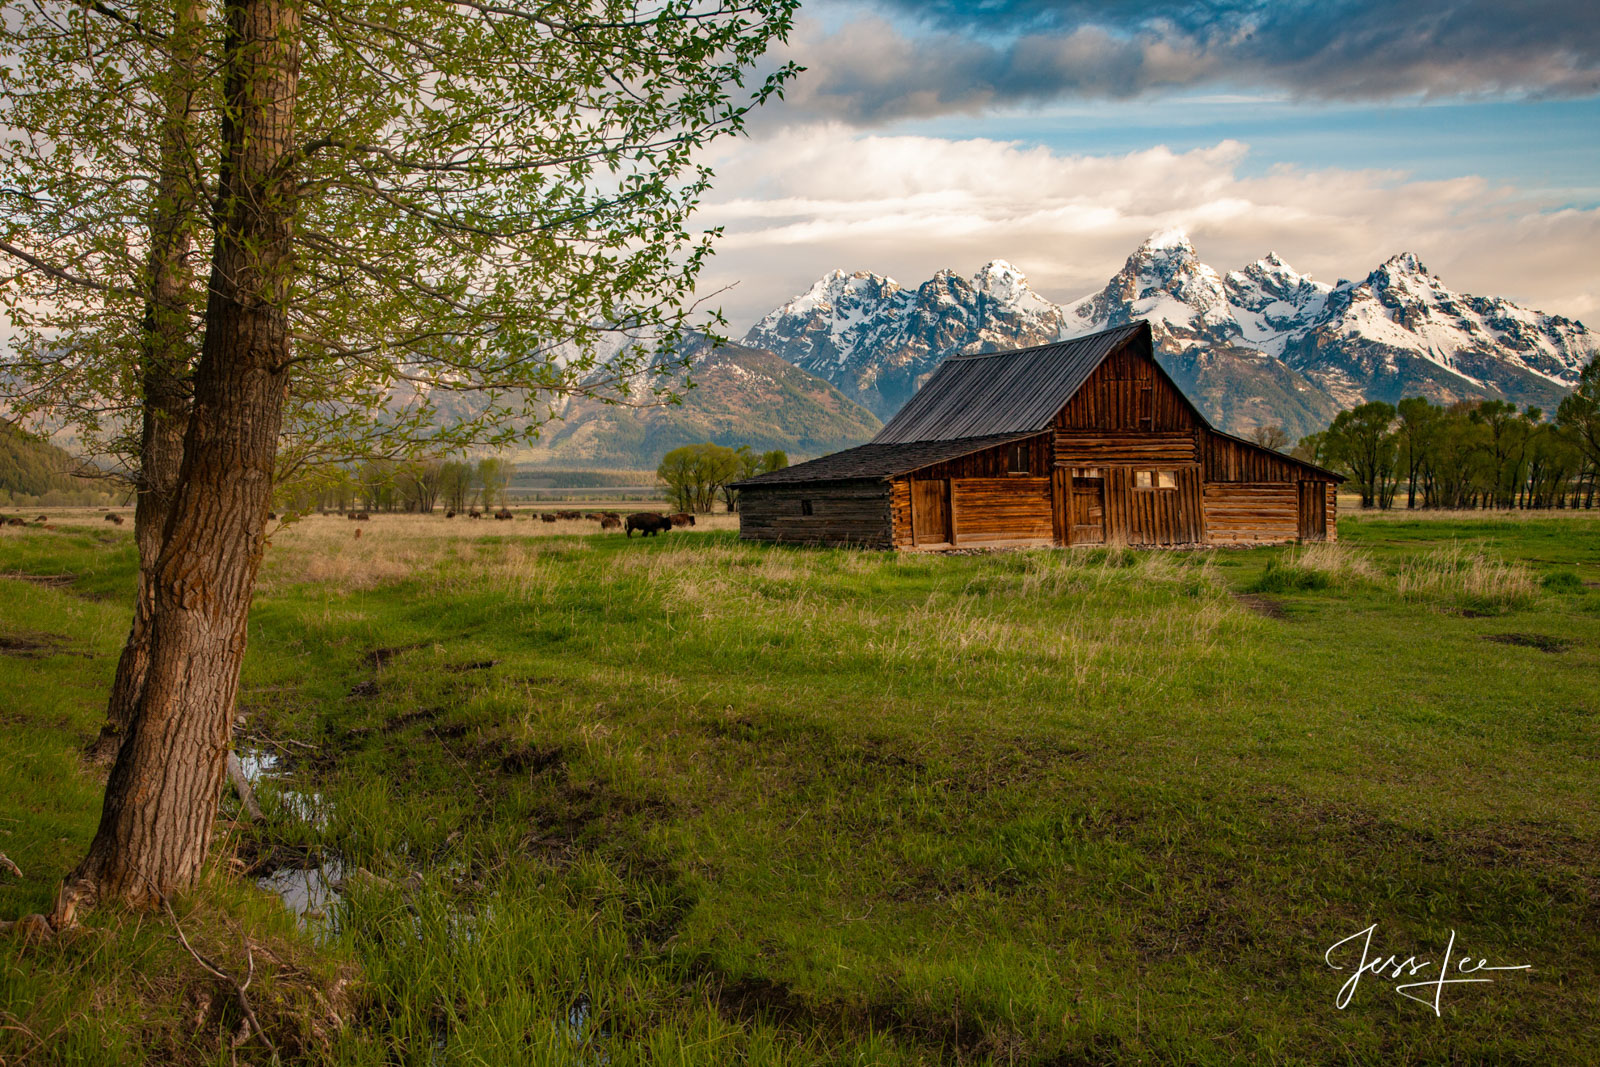 Teton Barn and mountain photography, quality, museum, fine art, print, , jess lee, artist, western, cowboy, photographer, limited edition, high quality, high resolution, beautiful, artistic, landscape, photo